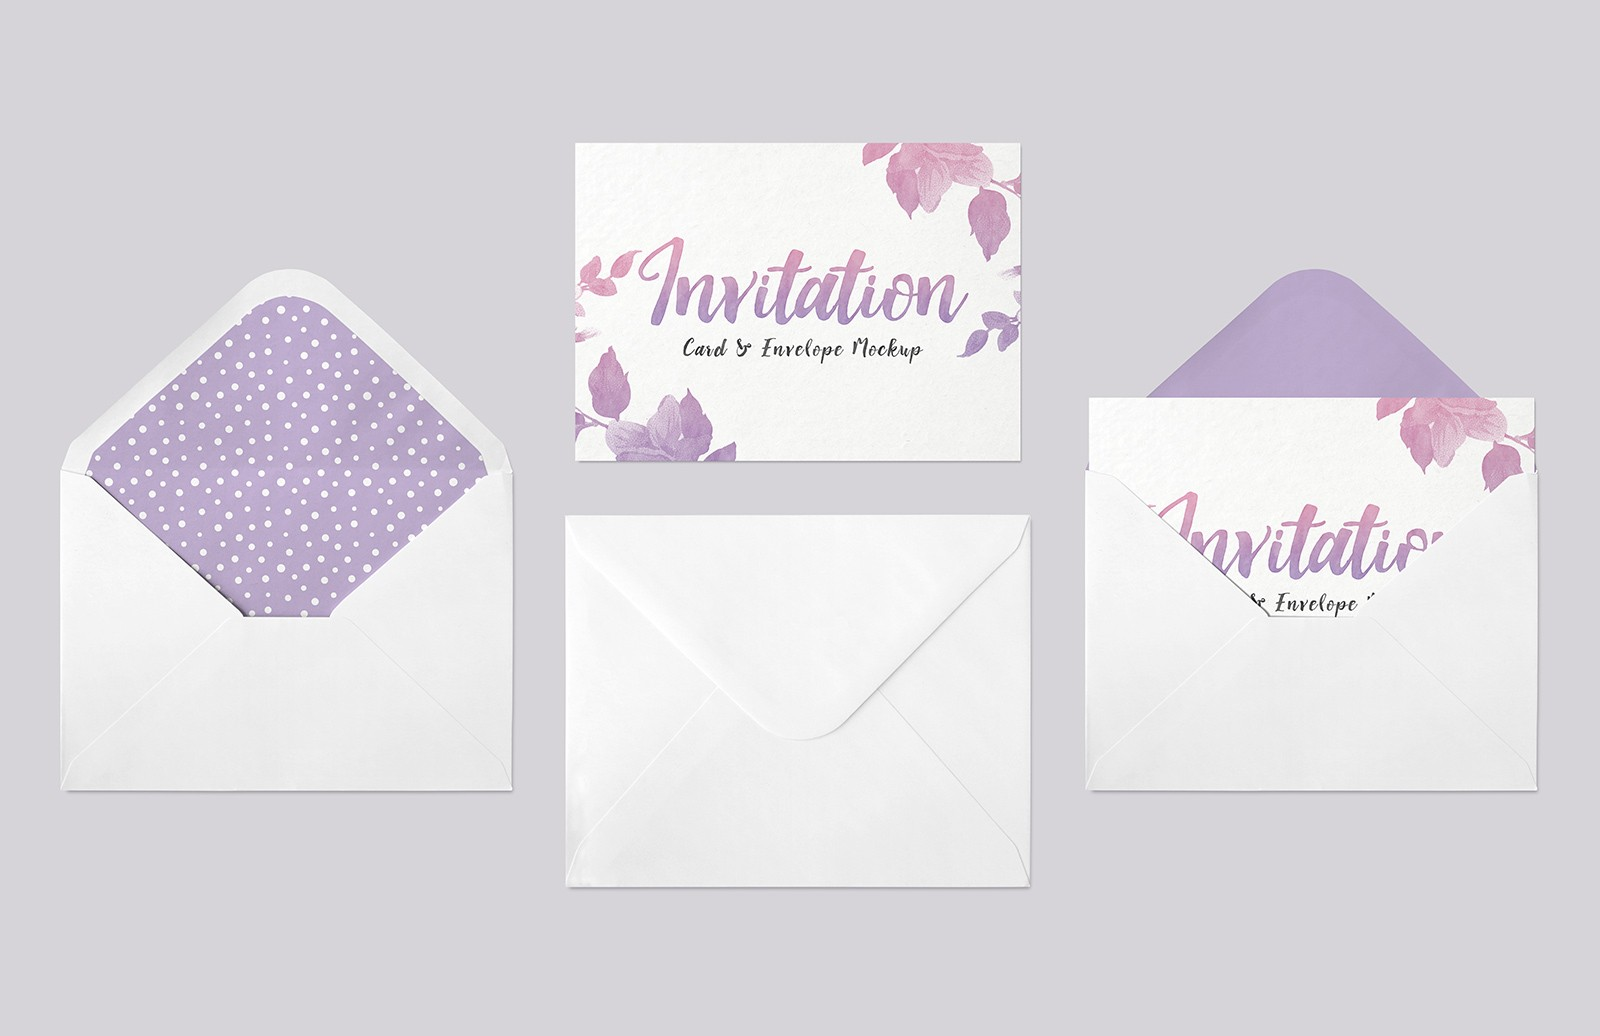 Invitation Card & Envelope Mockup